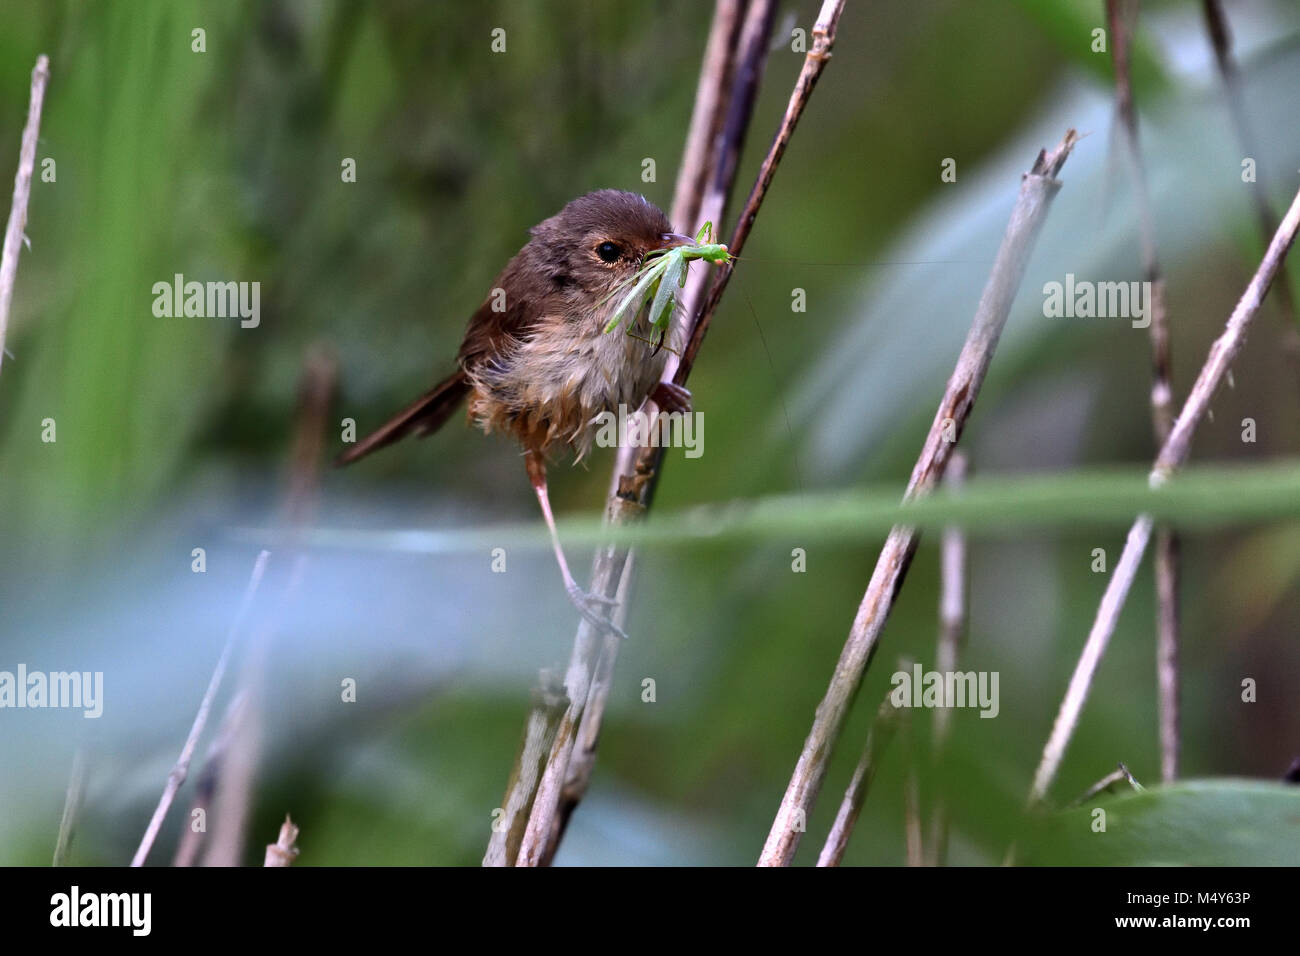 An Australian Female Red-backed Fairy-wren with an Insect in its mouth Stock Photo